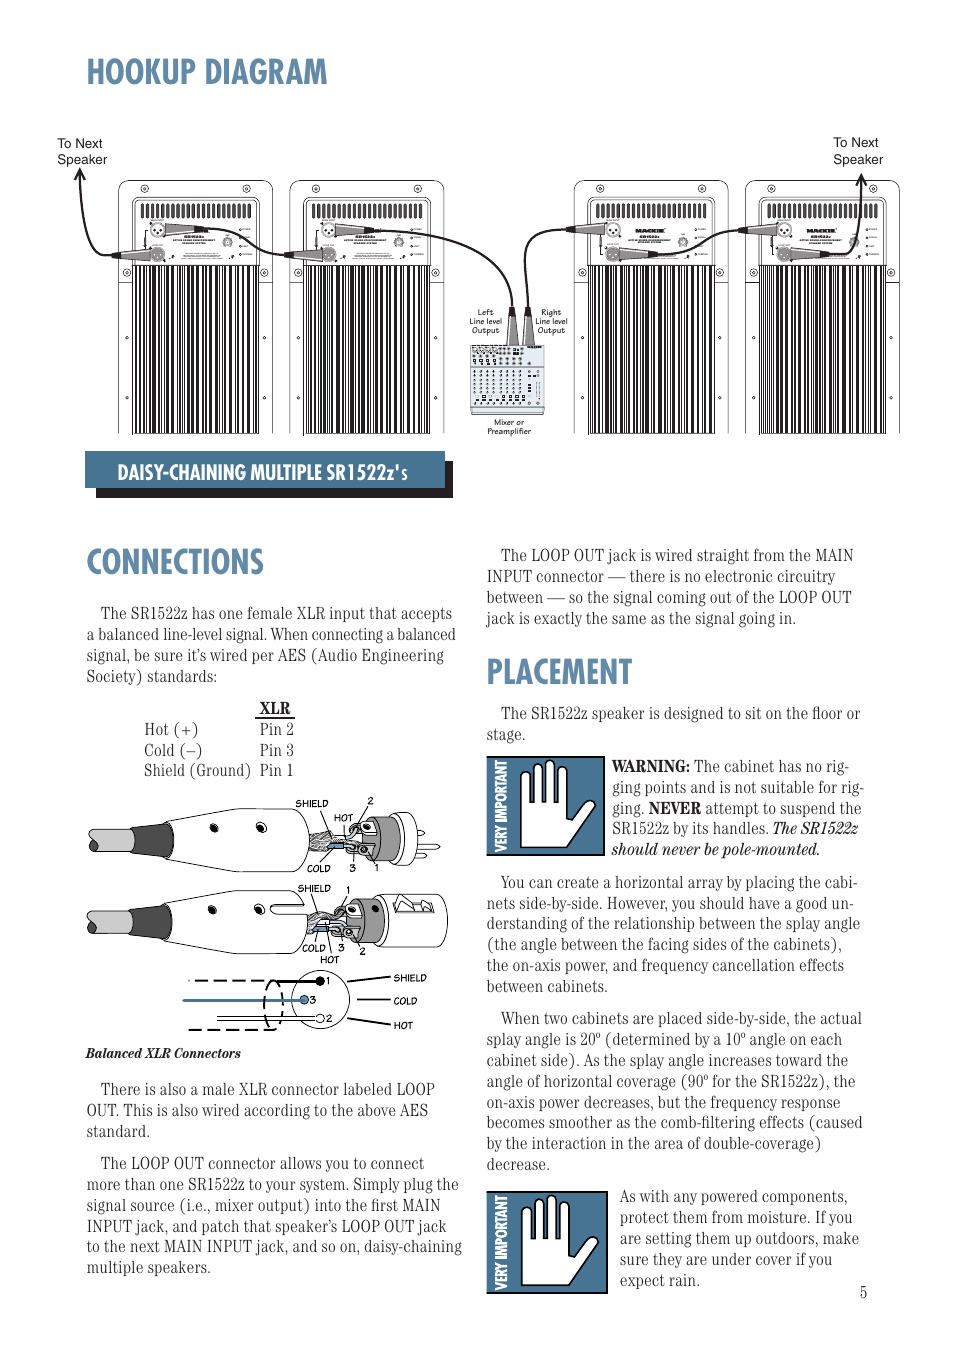 medium resolution of hookup diagram connections placement daisy chaining multiple sr1522z balanced xlr connectors